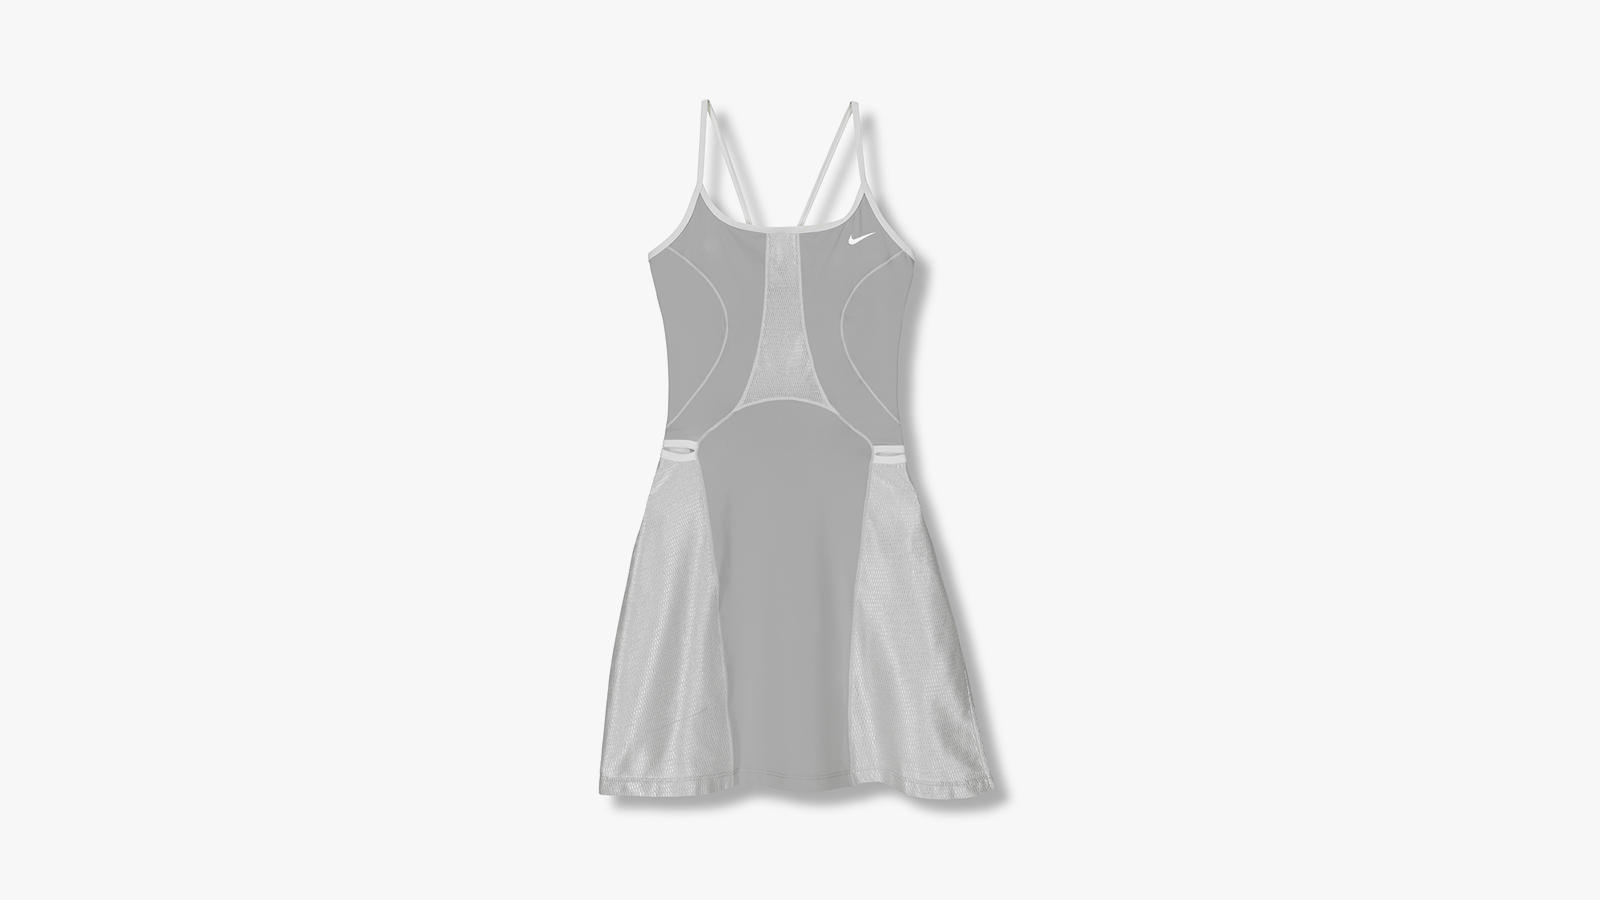 2004-Nike-Sphere-Shine-Statement-Dress-Inspired-by-Maria-Sharapova